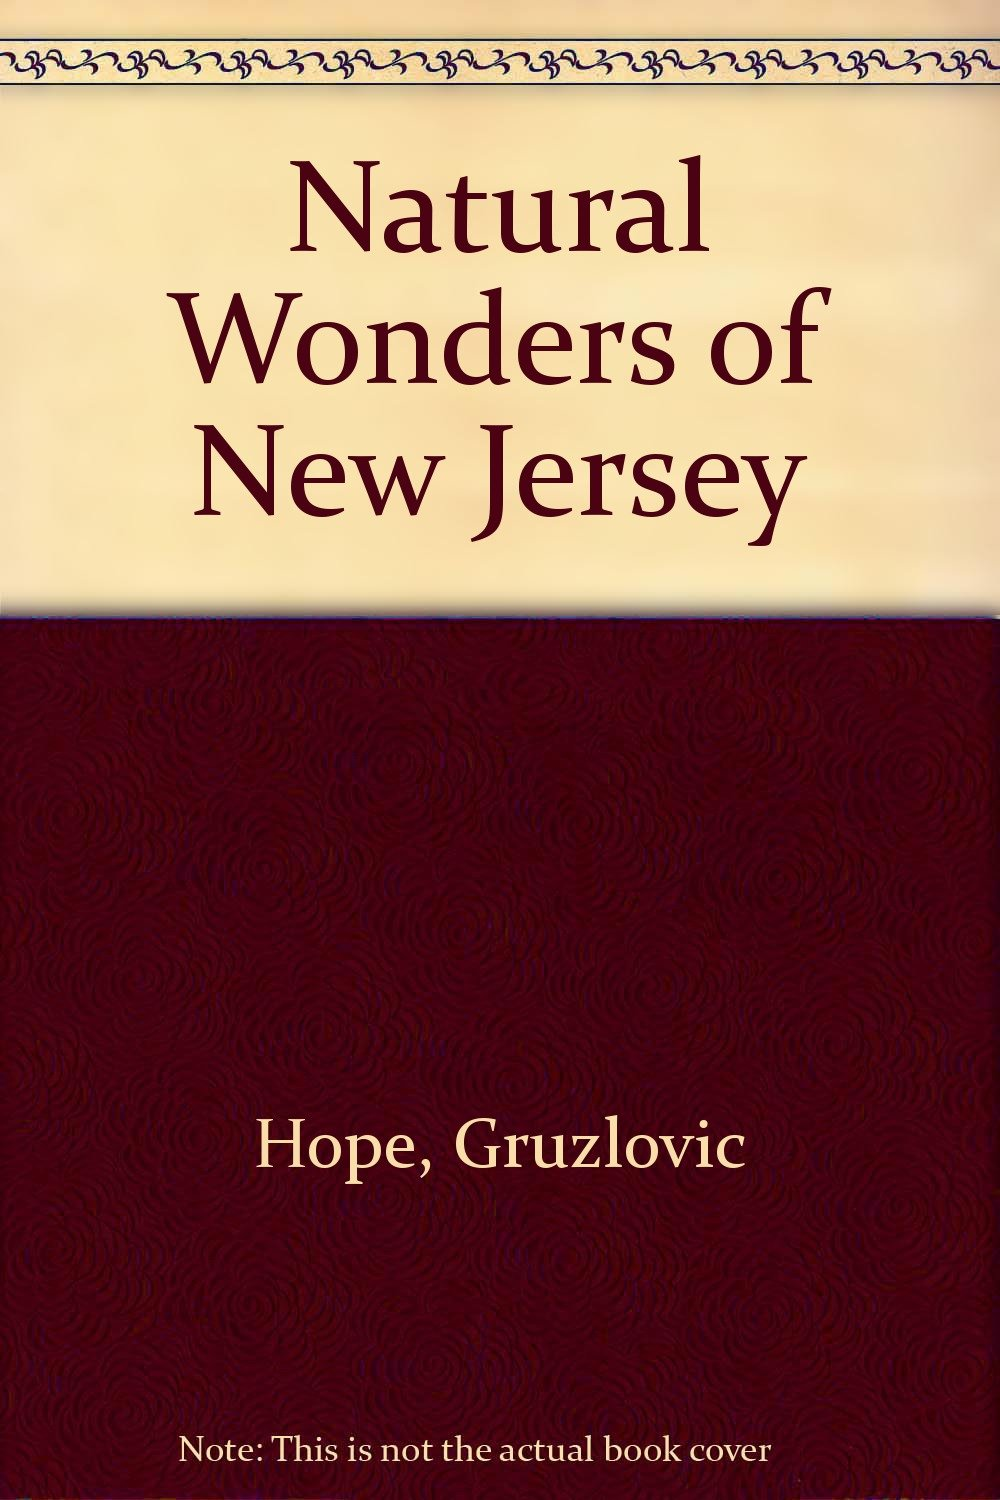 Natural Wonders of New Jersey: Exploring Wild and Scenic Places